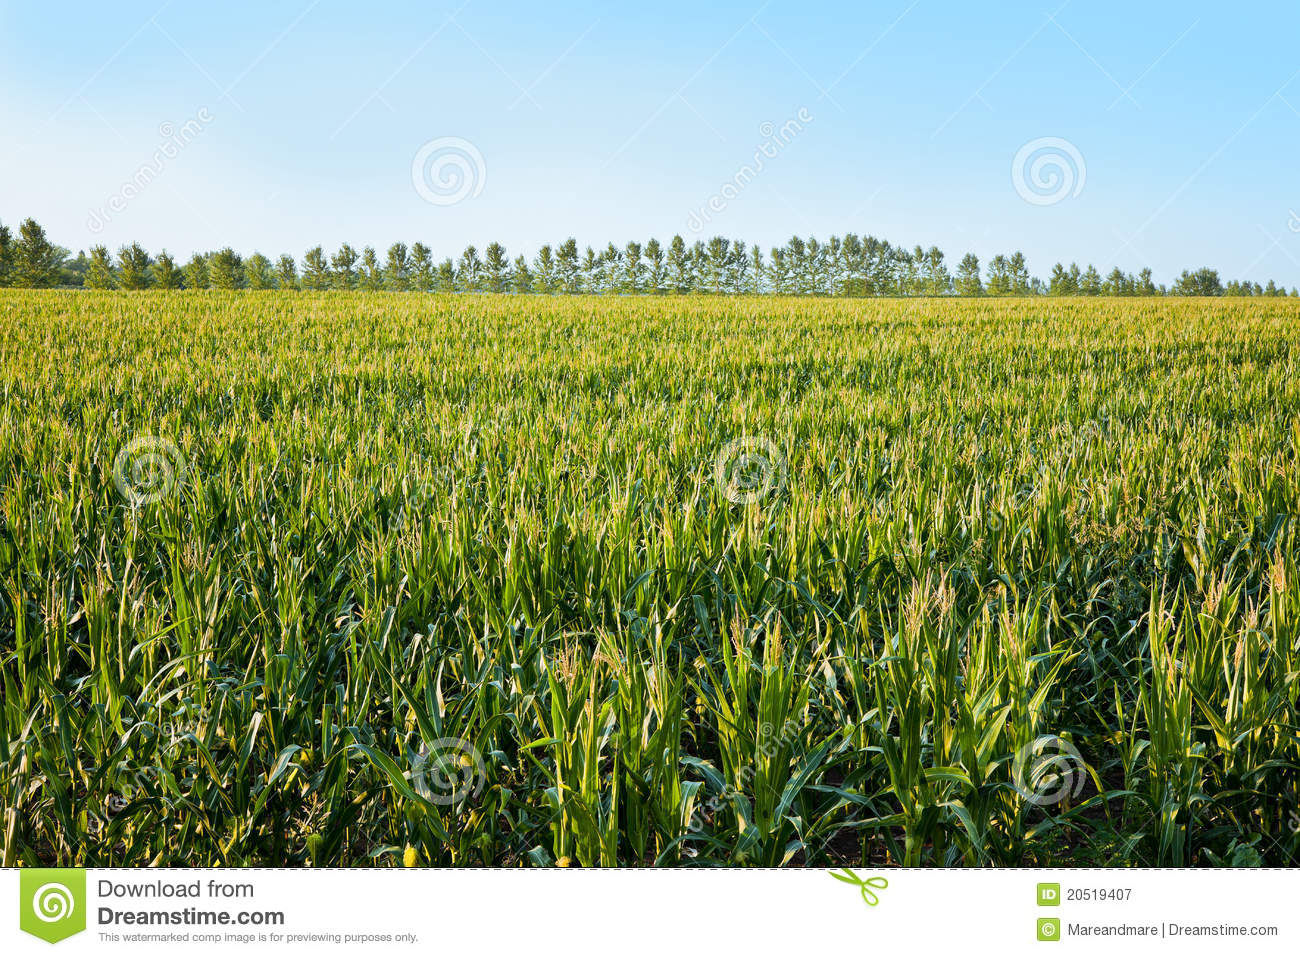 Cornfield Royalty Free Stock Photography - Image: 20519407